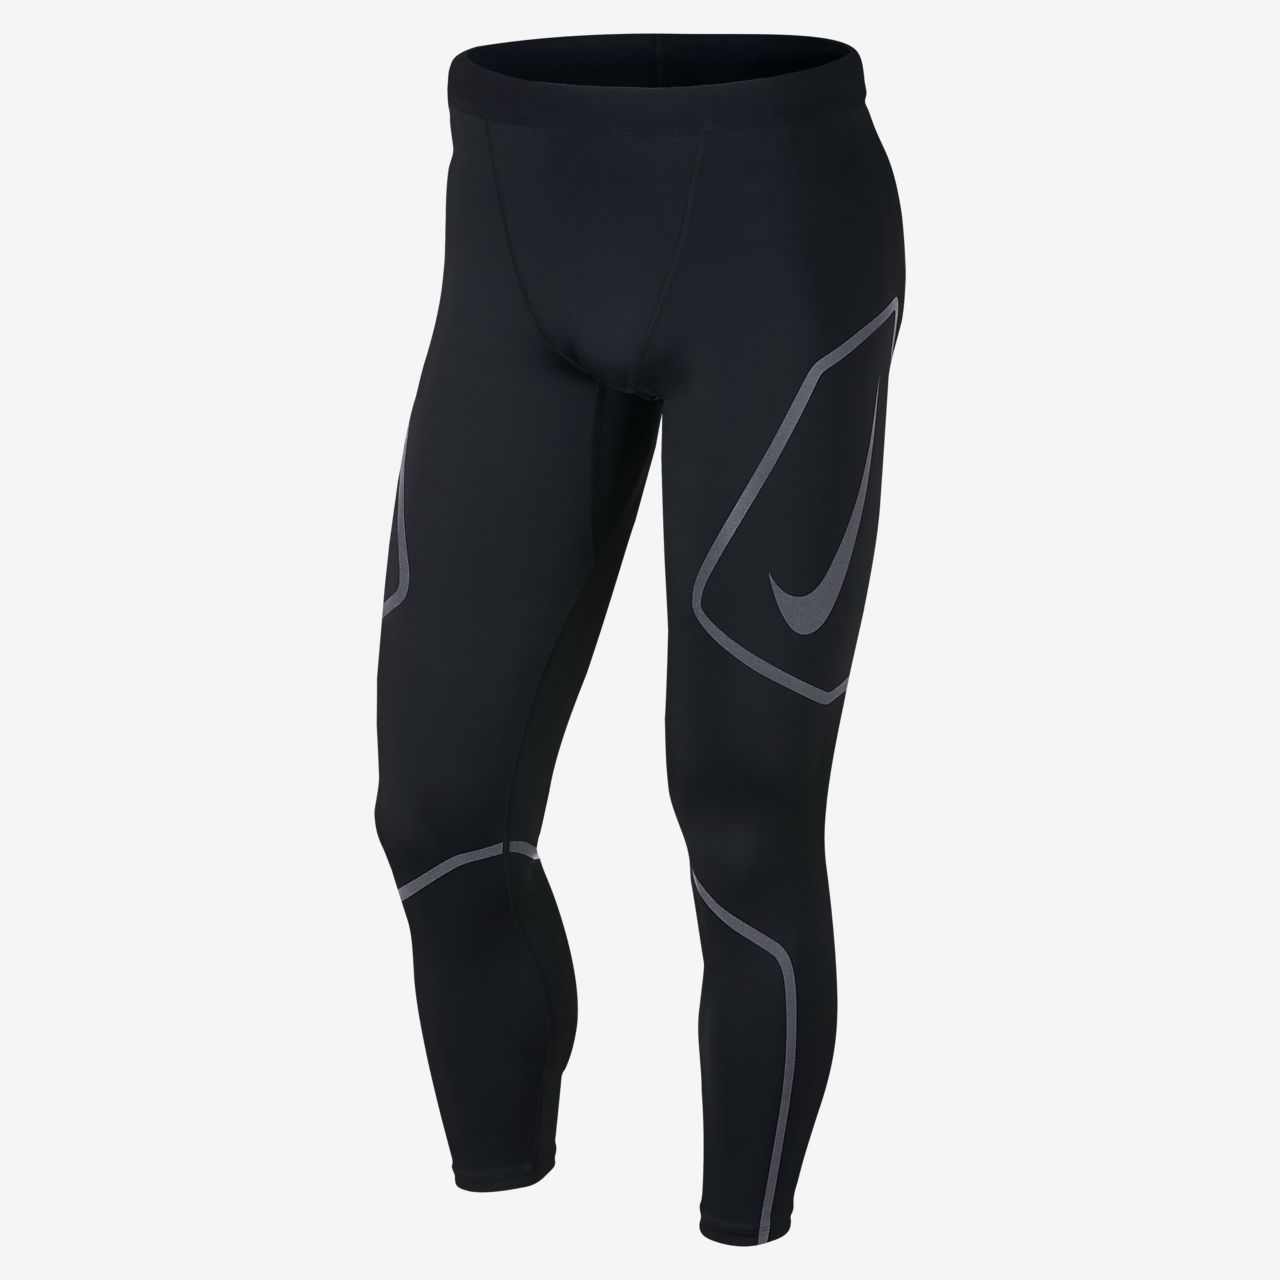 ca39e7abddcca Nike Tech Men's Running Tights. Nike.com IE